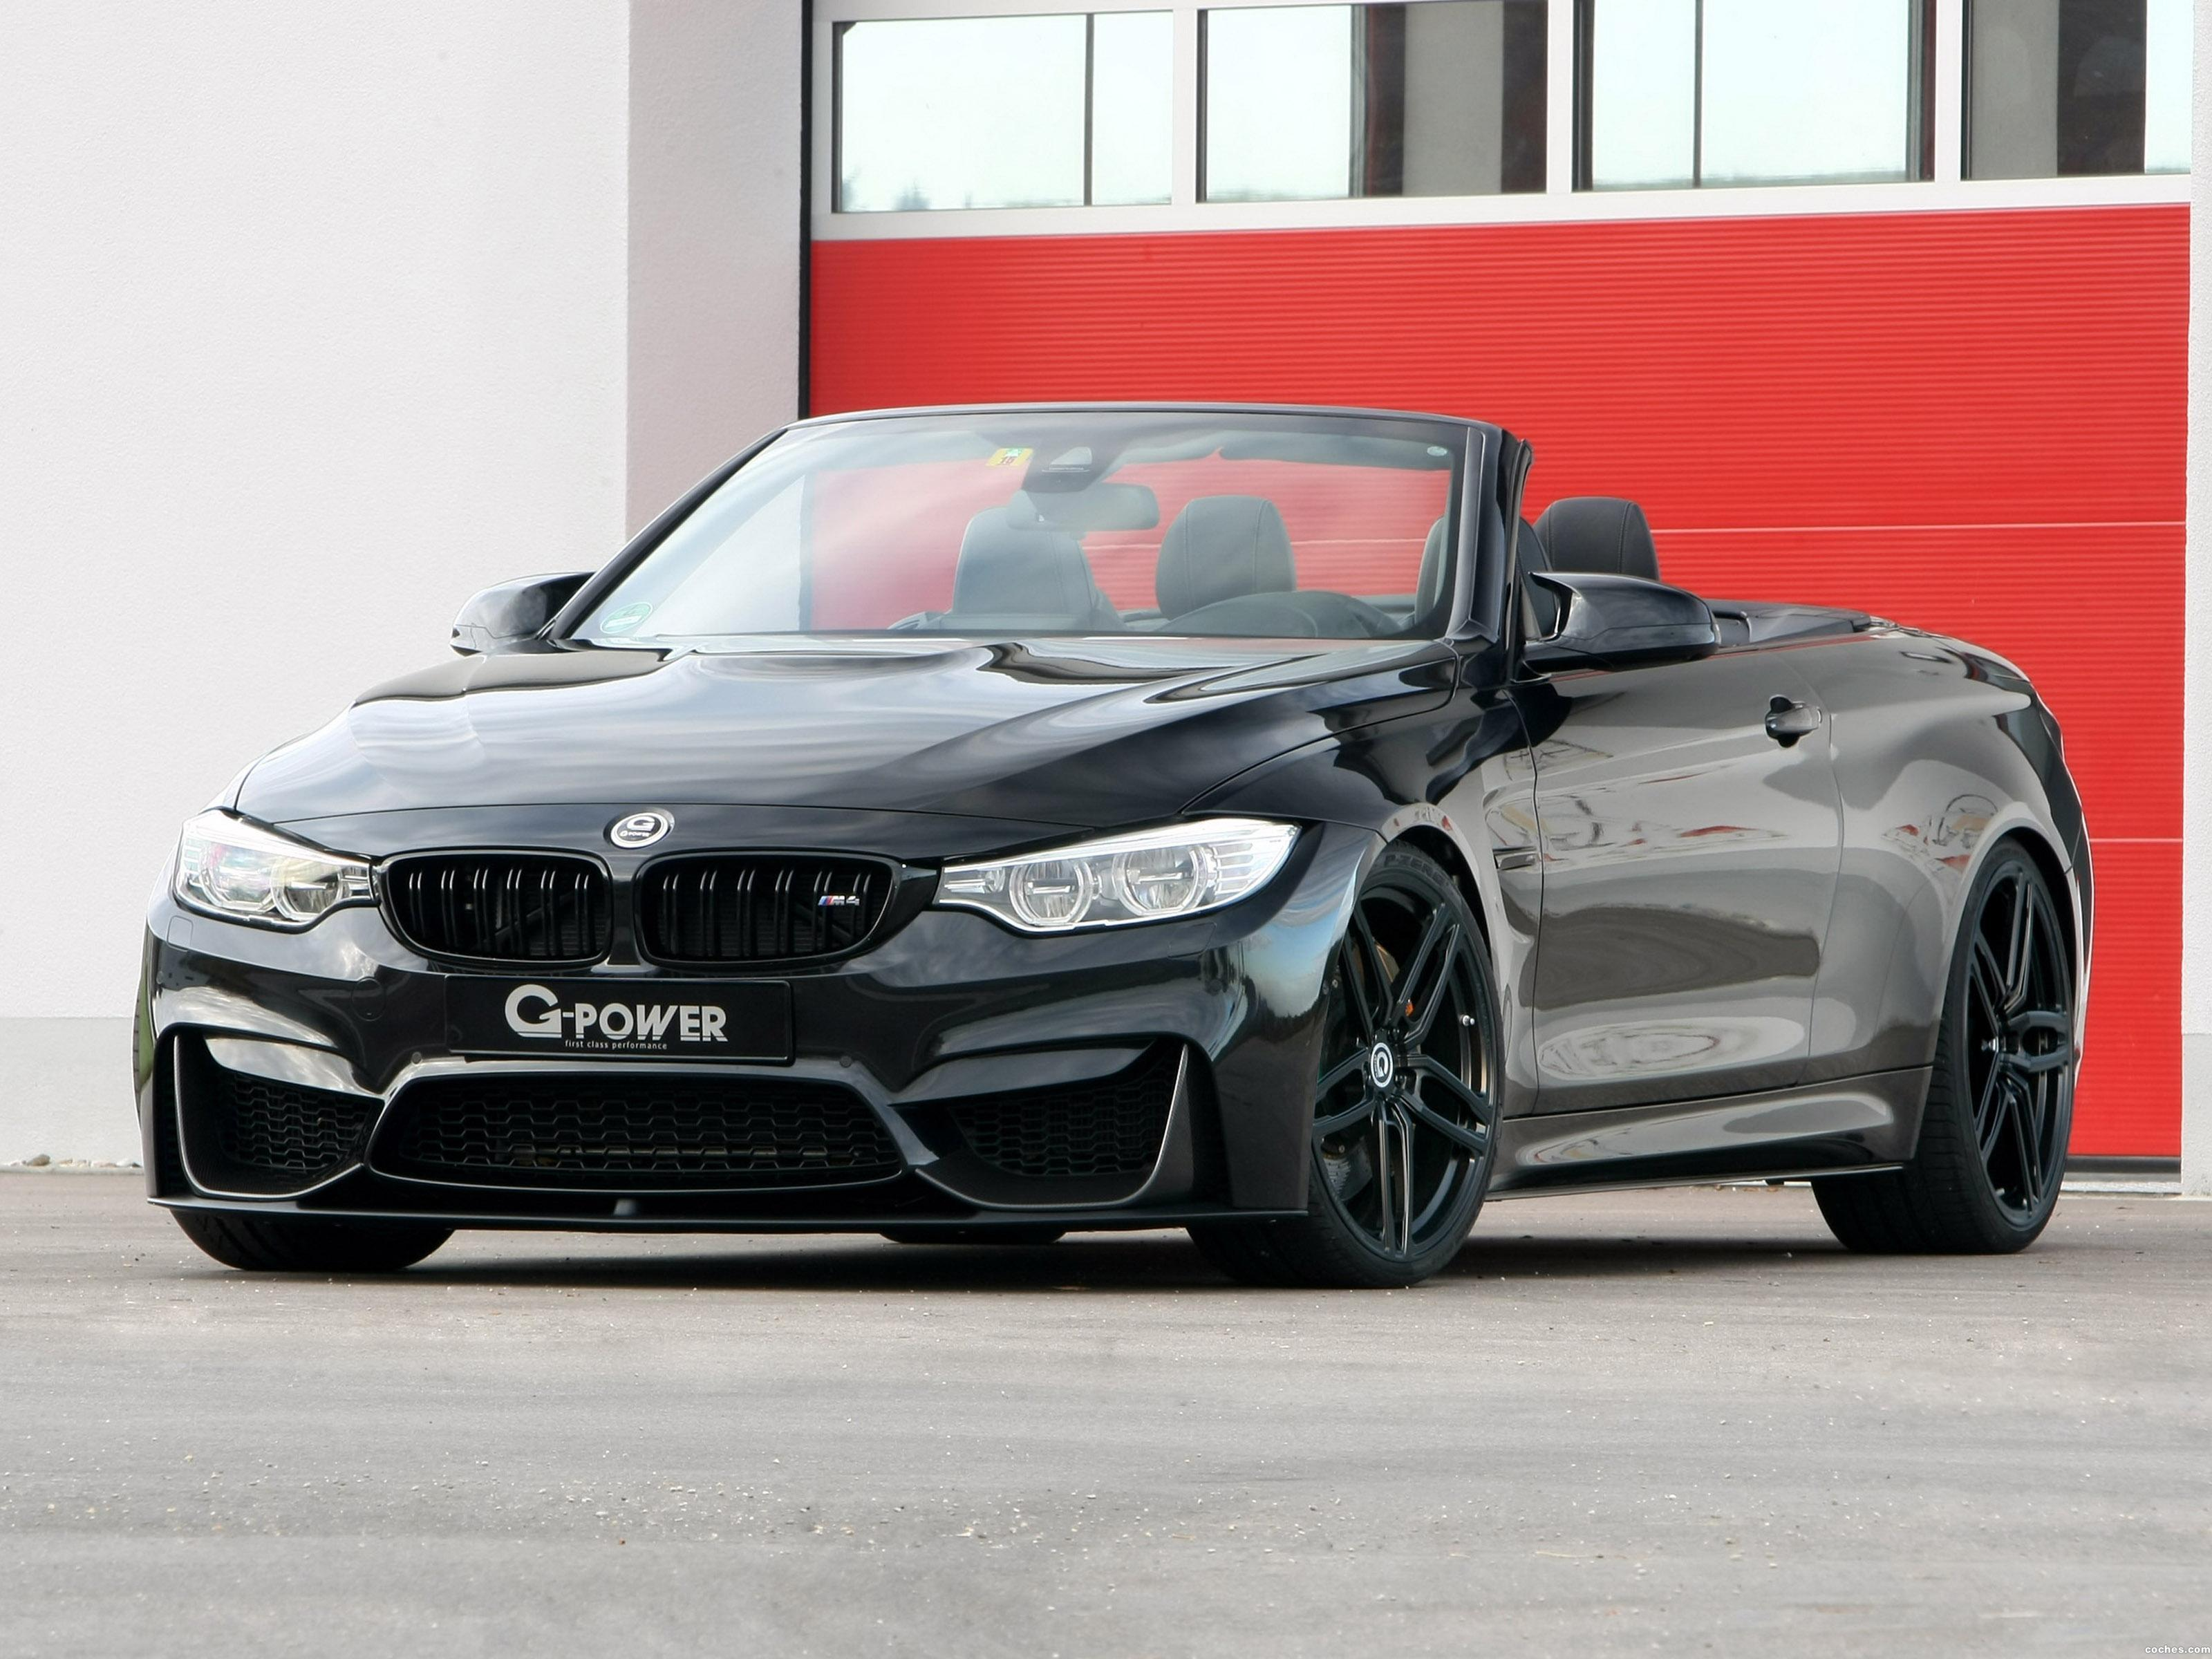 Foto 0 de G-power BMW M4 Cabrio F83 2016